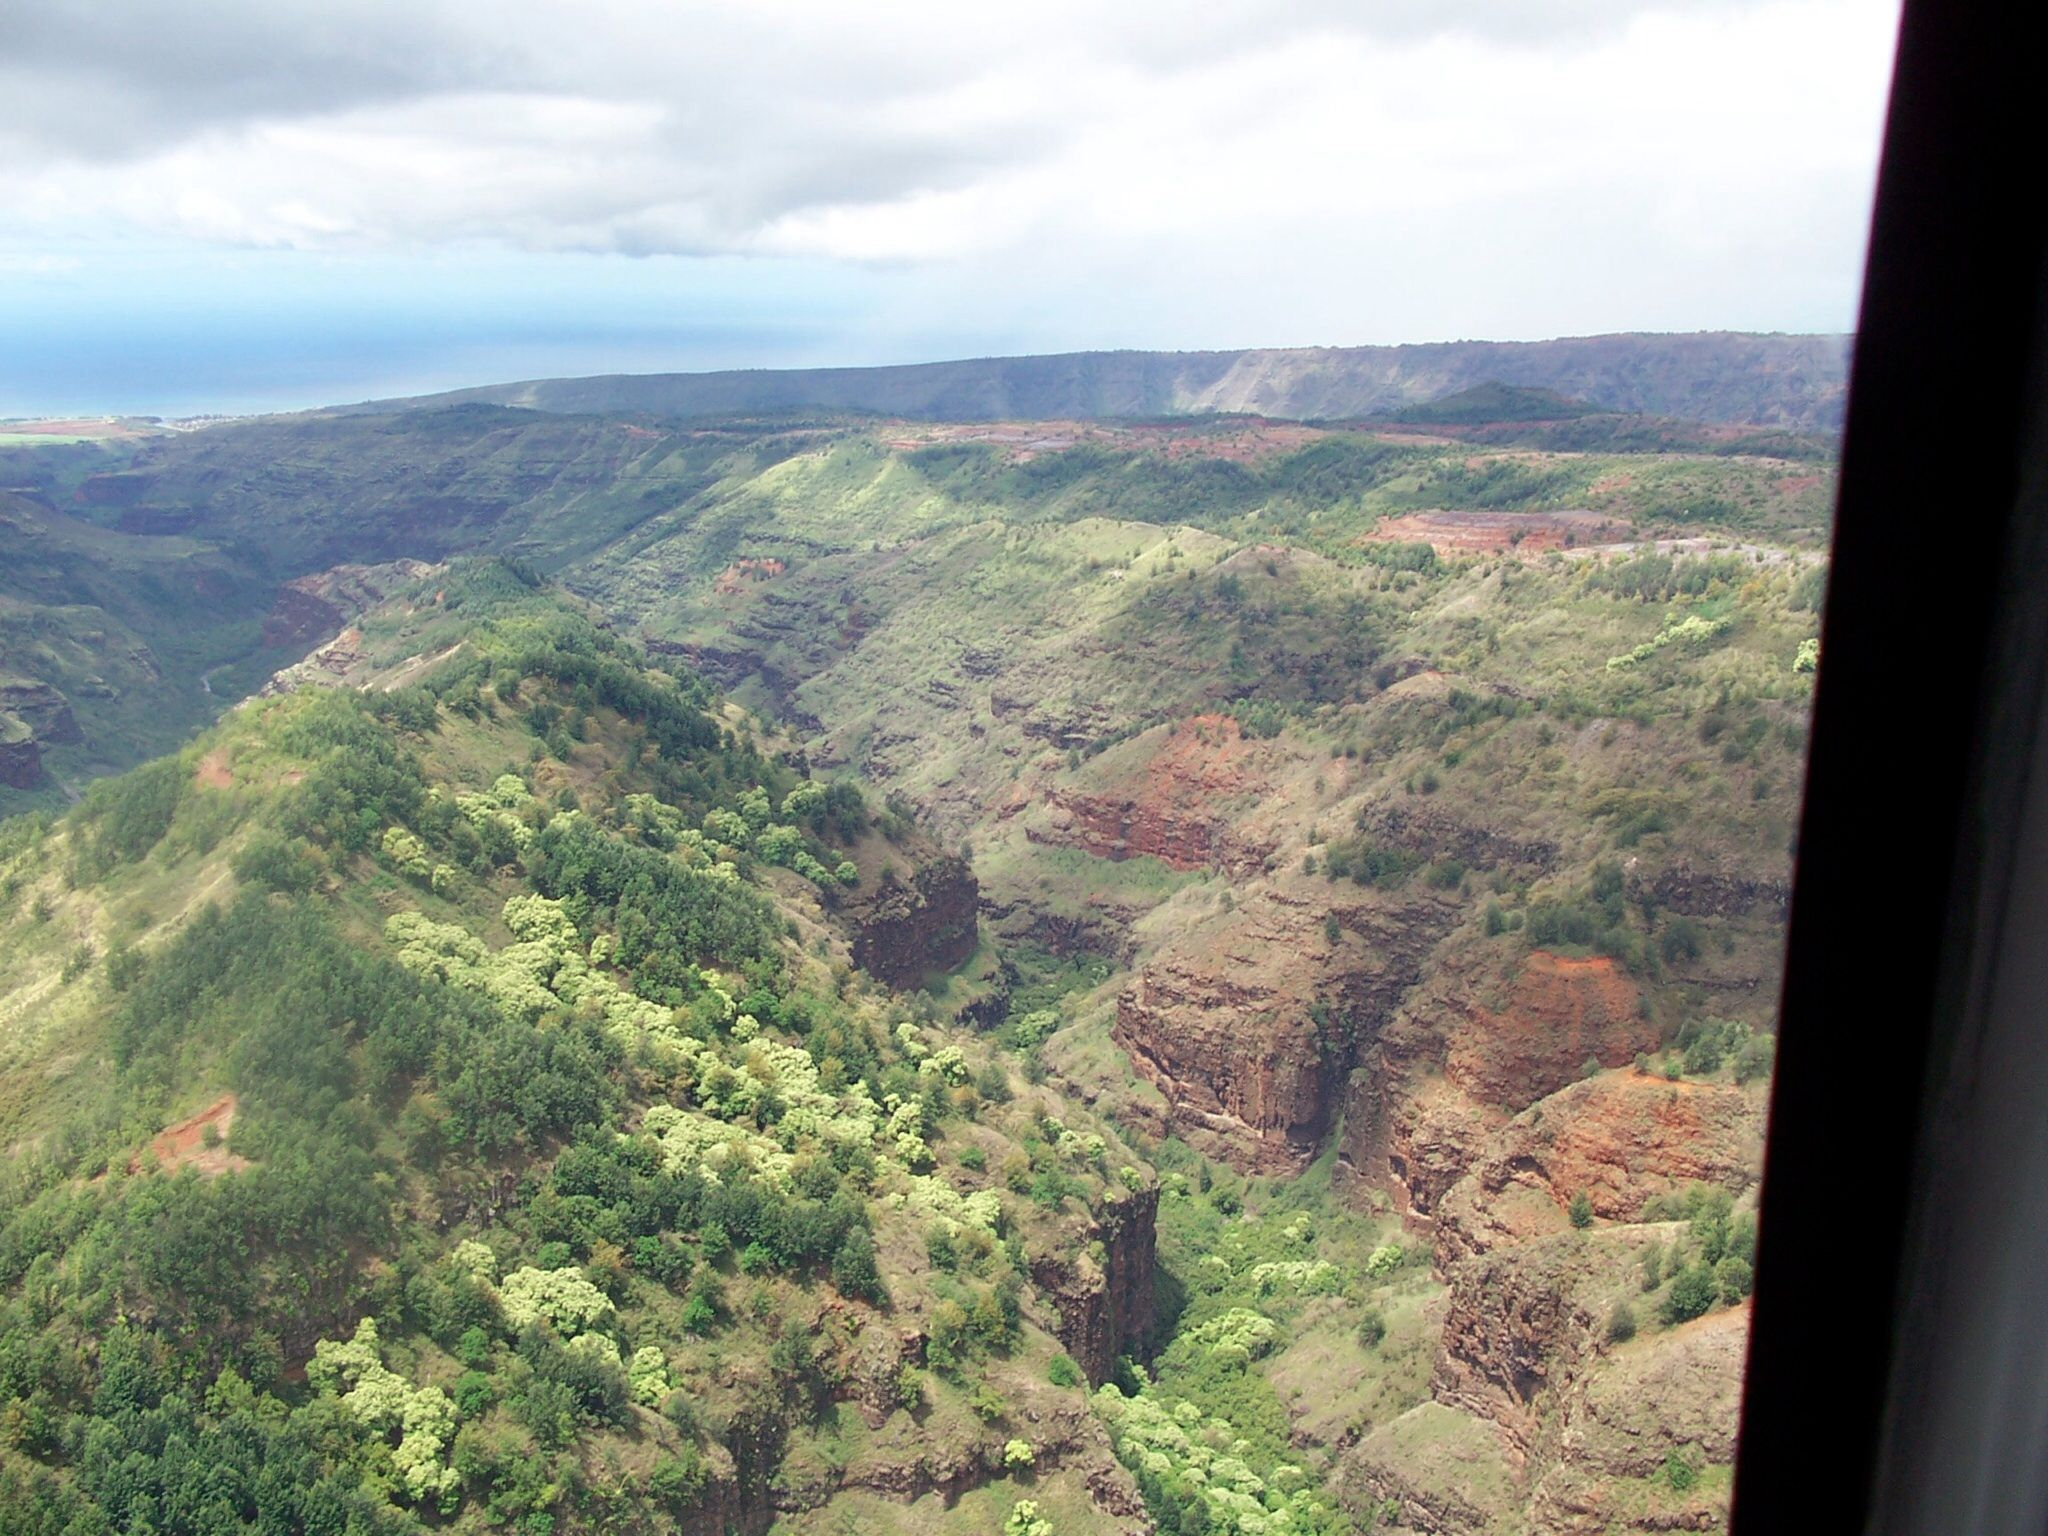 Kauai by helicopter... Worth seeing